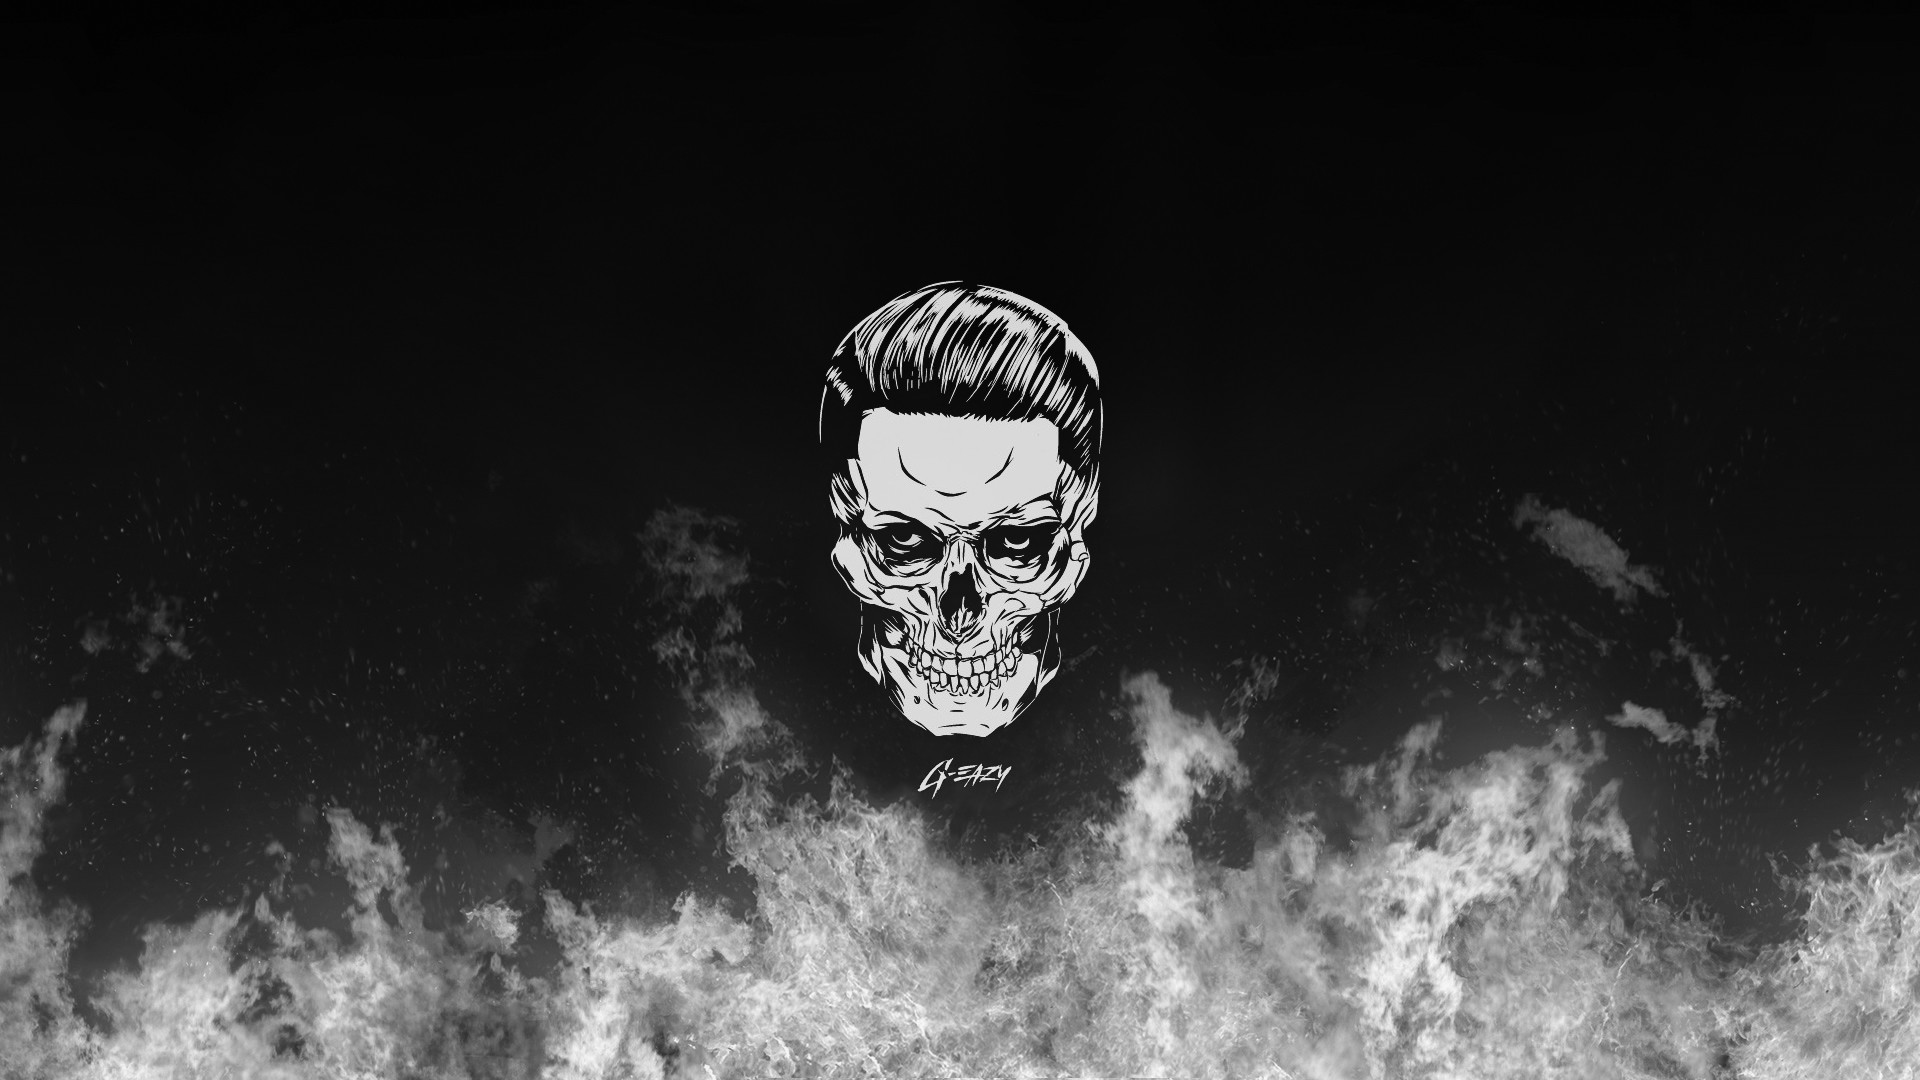 G Eazy Wallpapers 72 Images